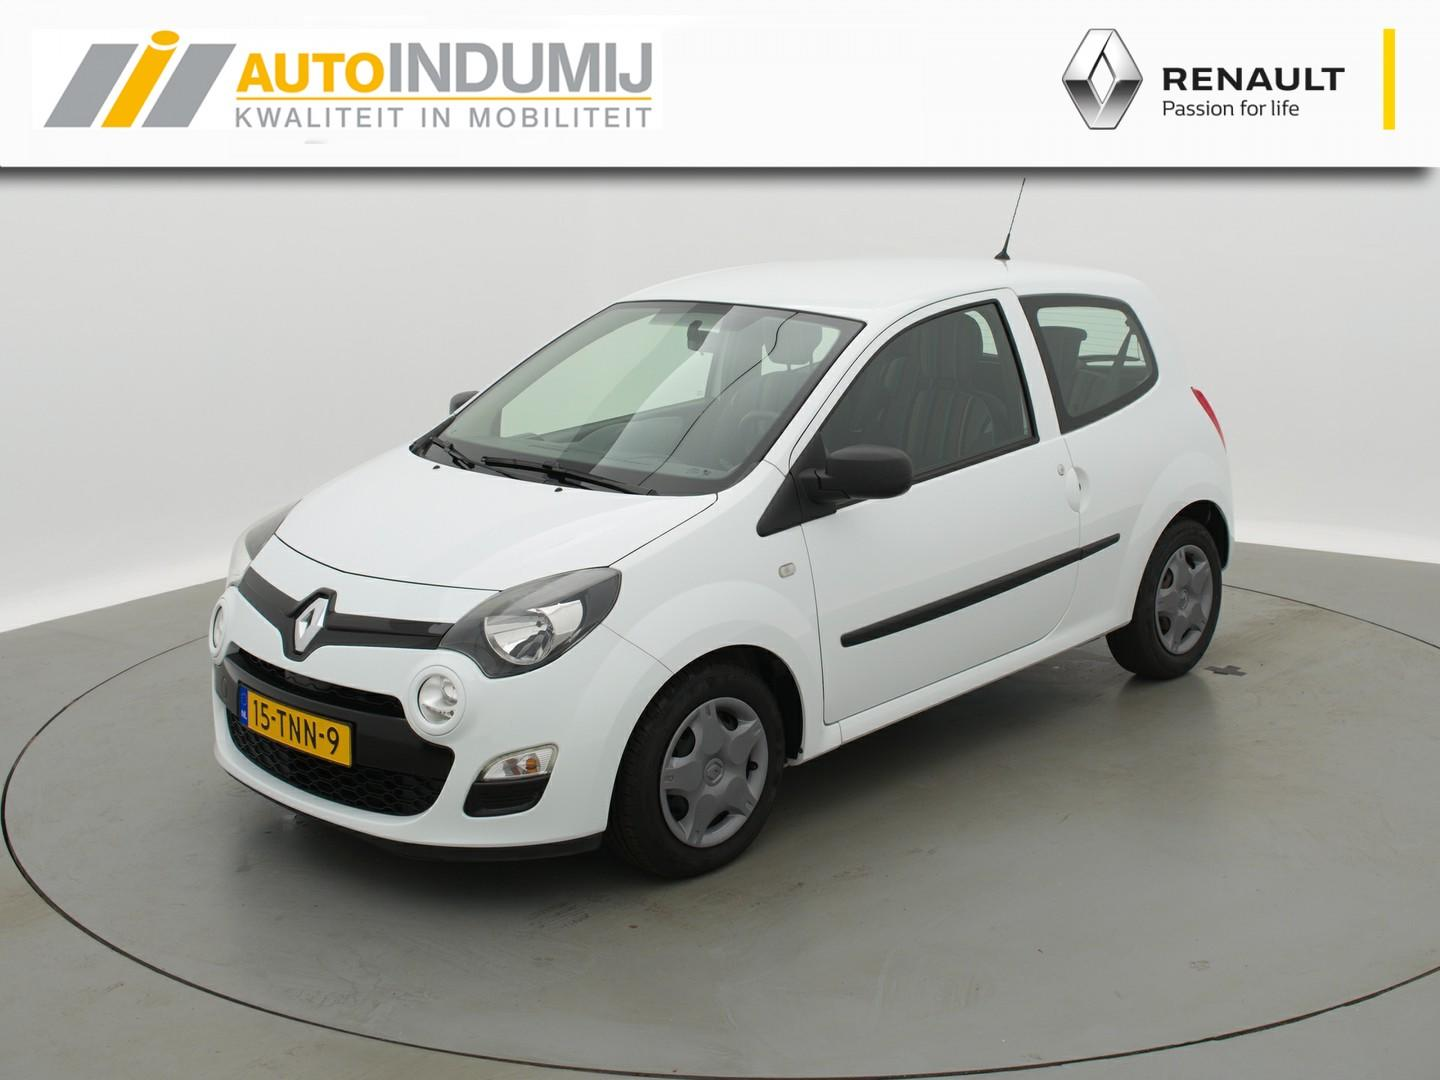 Renault Twingo 1.2 16v authentique / radio cd-speler